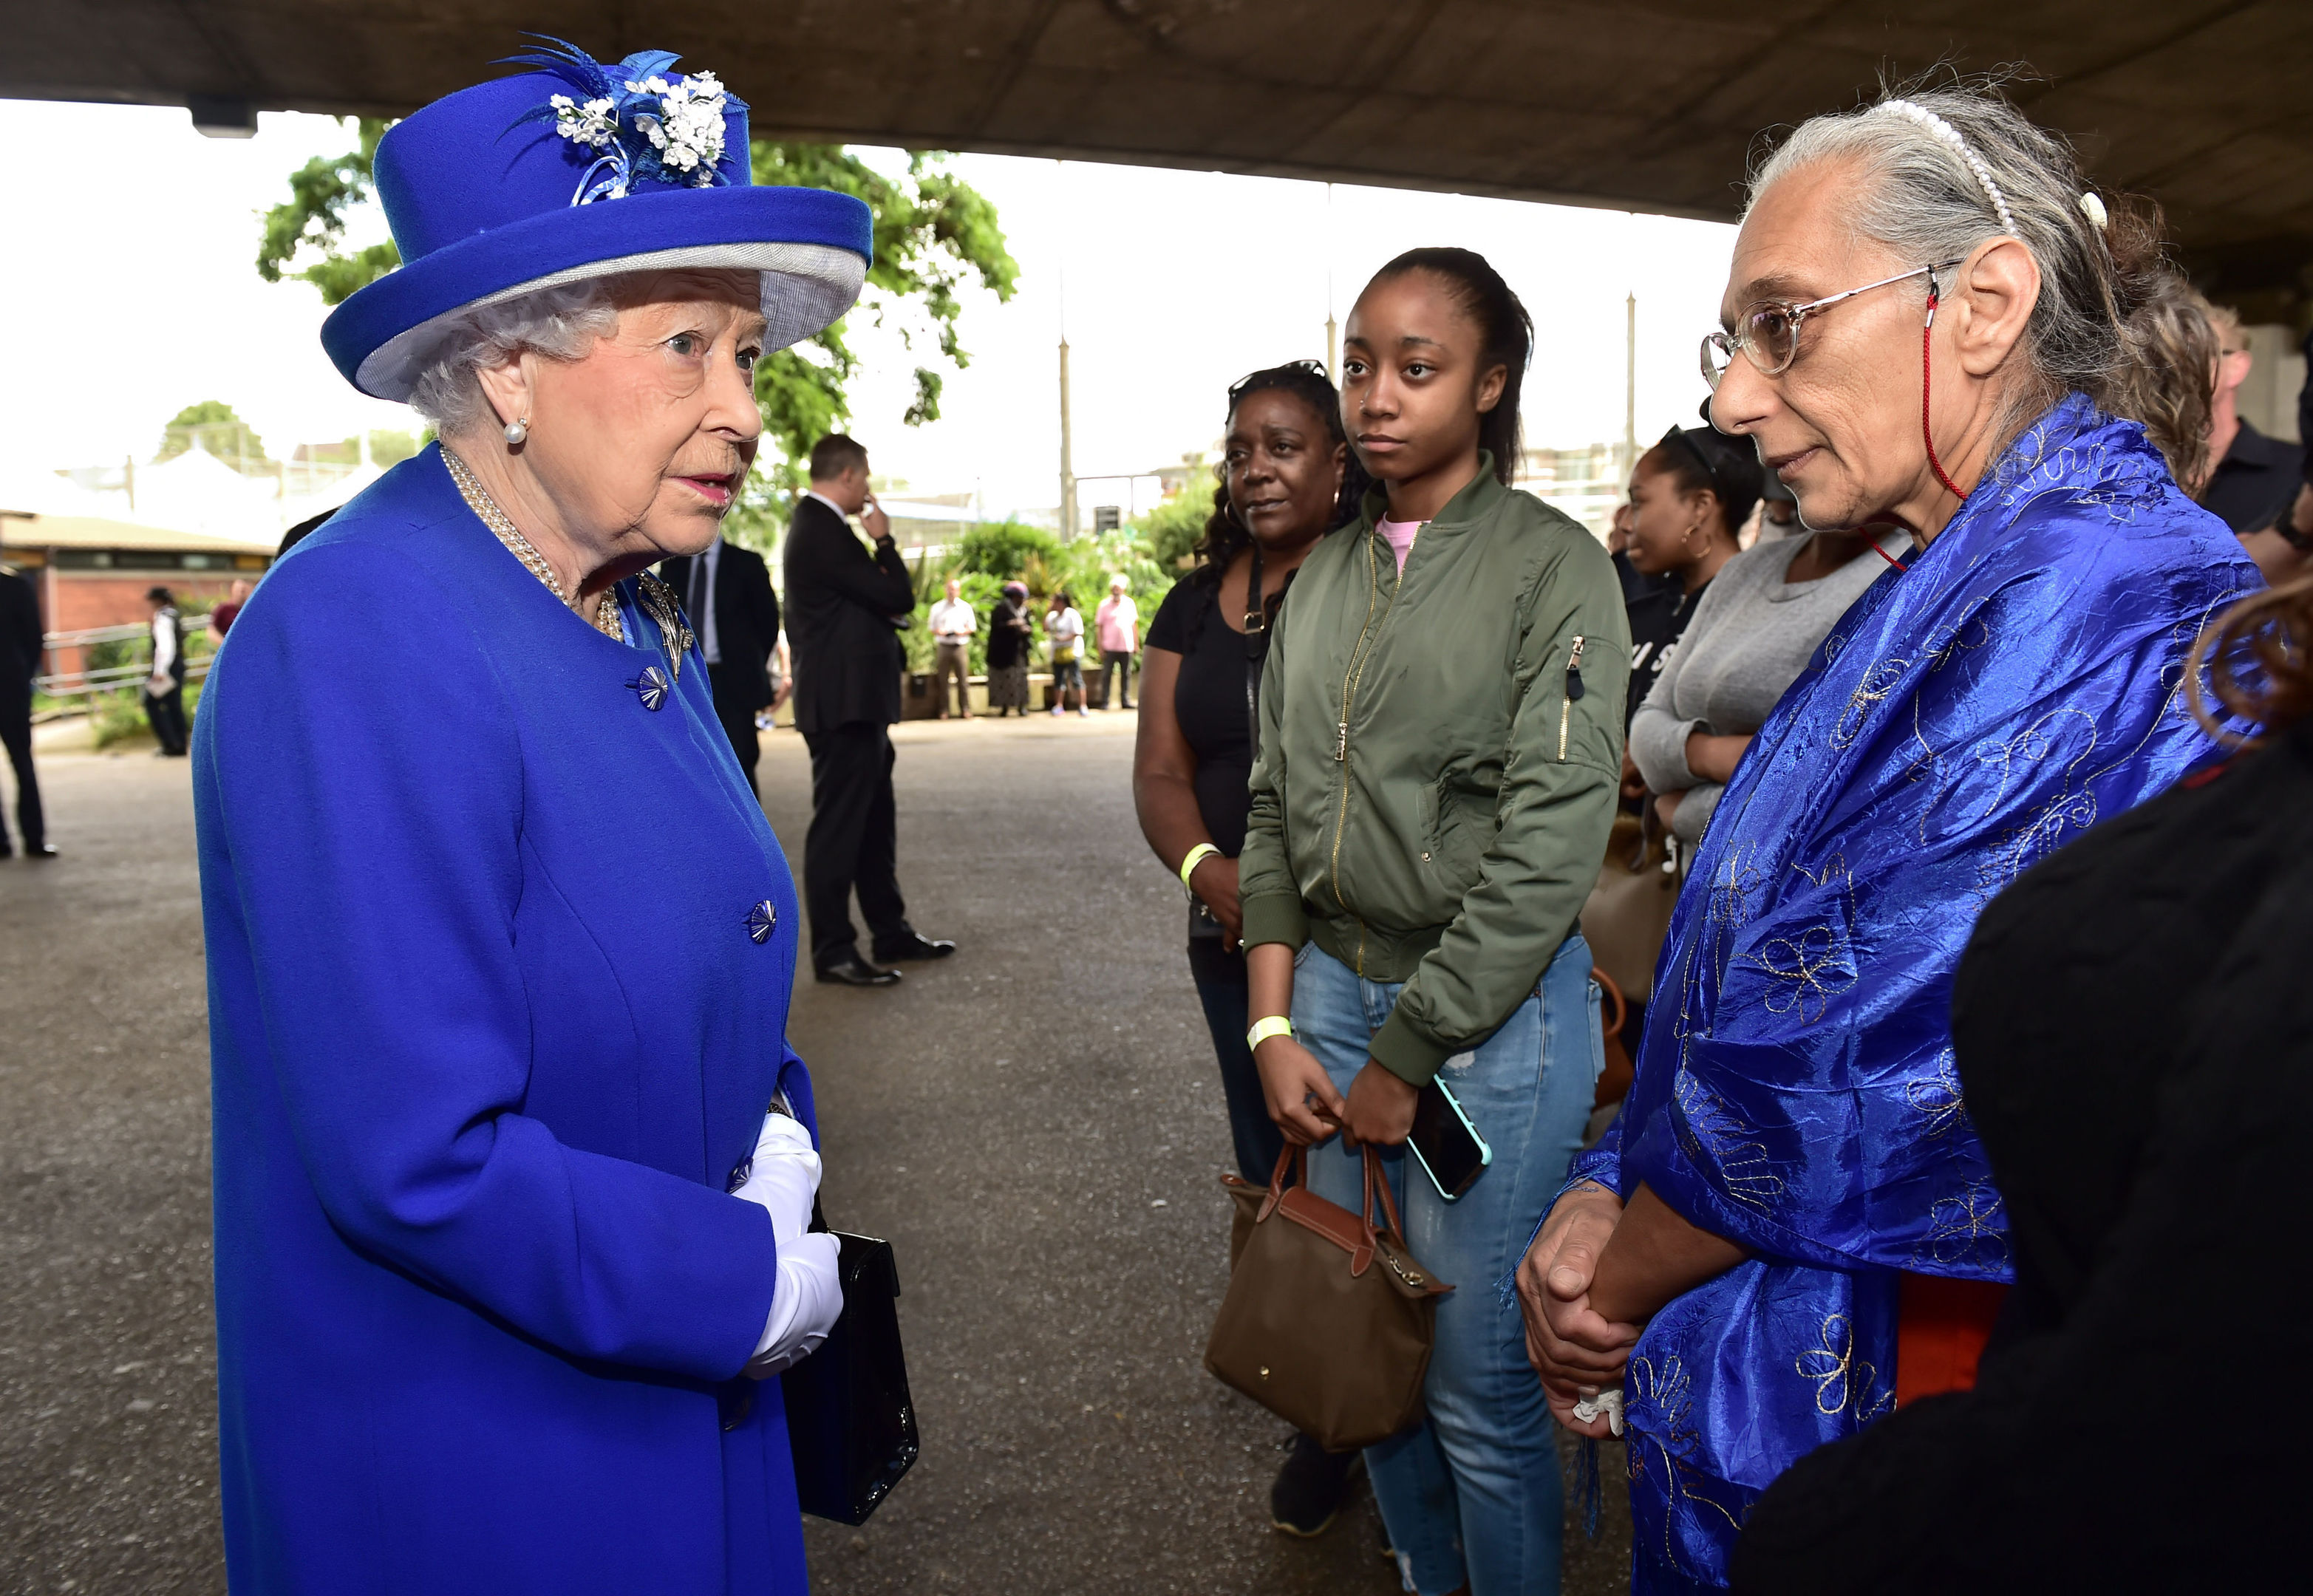 Queen Elizabeth II meets members of the community affected by the fire at Grenfell Tower (Dominic Lipinski/PA Wire)